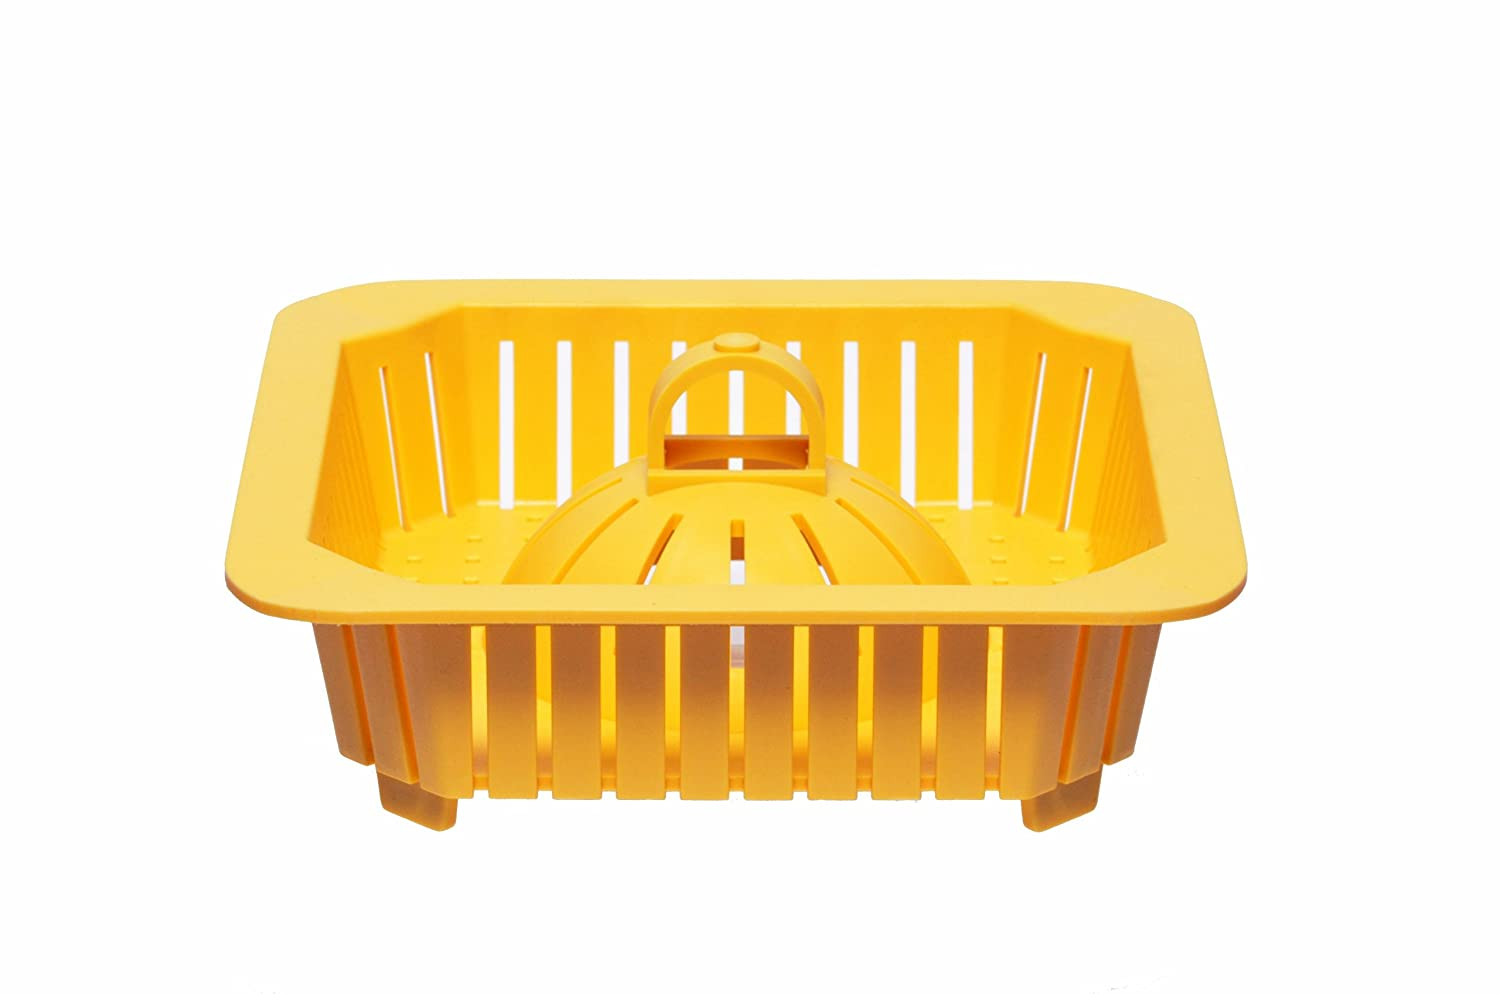 9 Inch PermaDrain Safety Strainer Basket. Fits Zurn, Oatey, Wade, Josam, Smith, and Other Small 8 Inch Floor Sinks